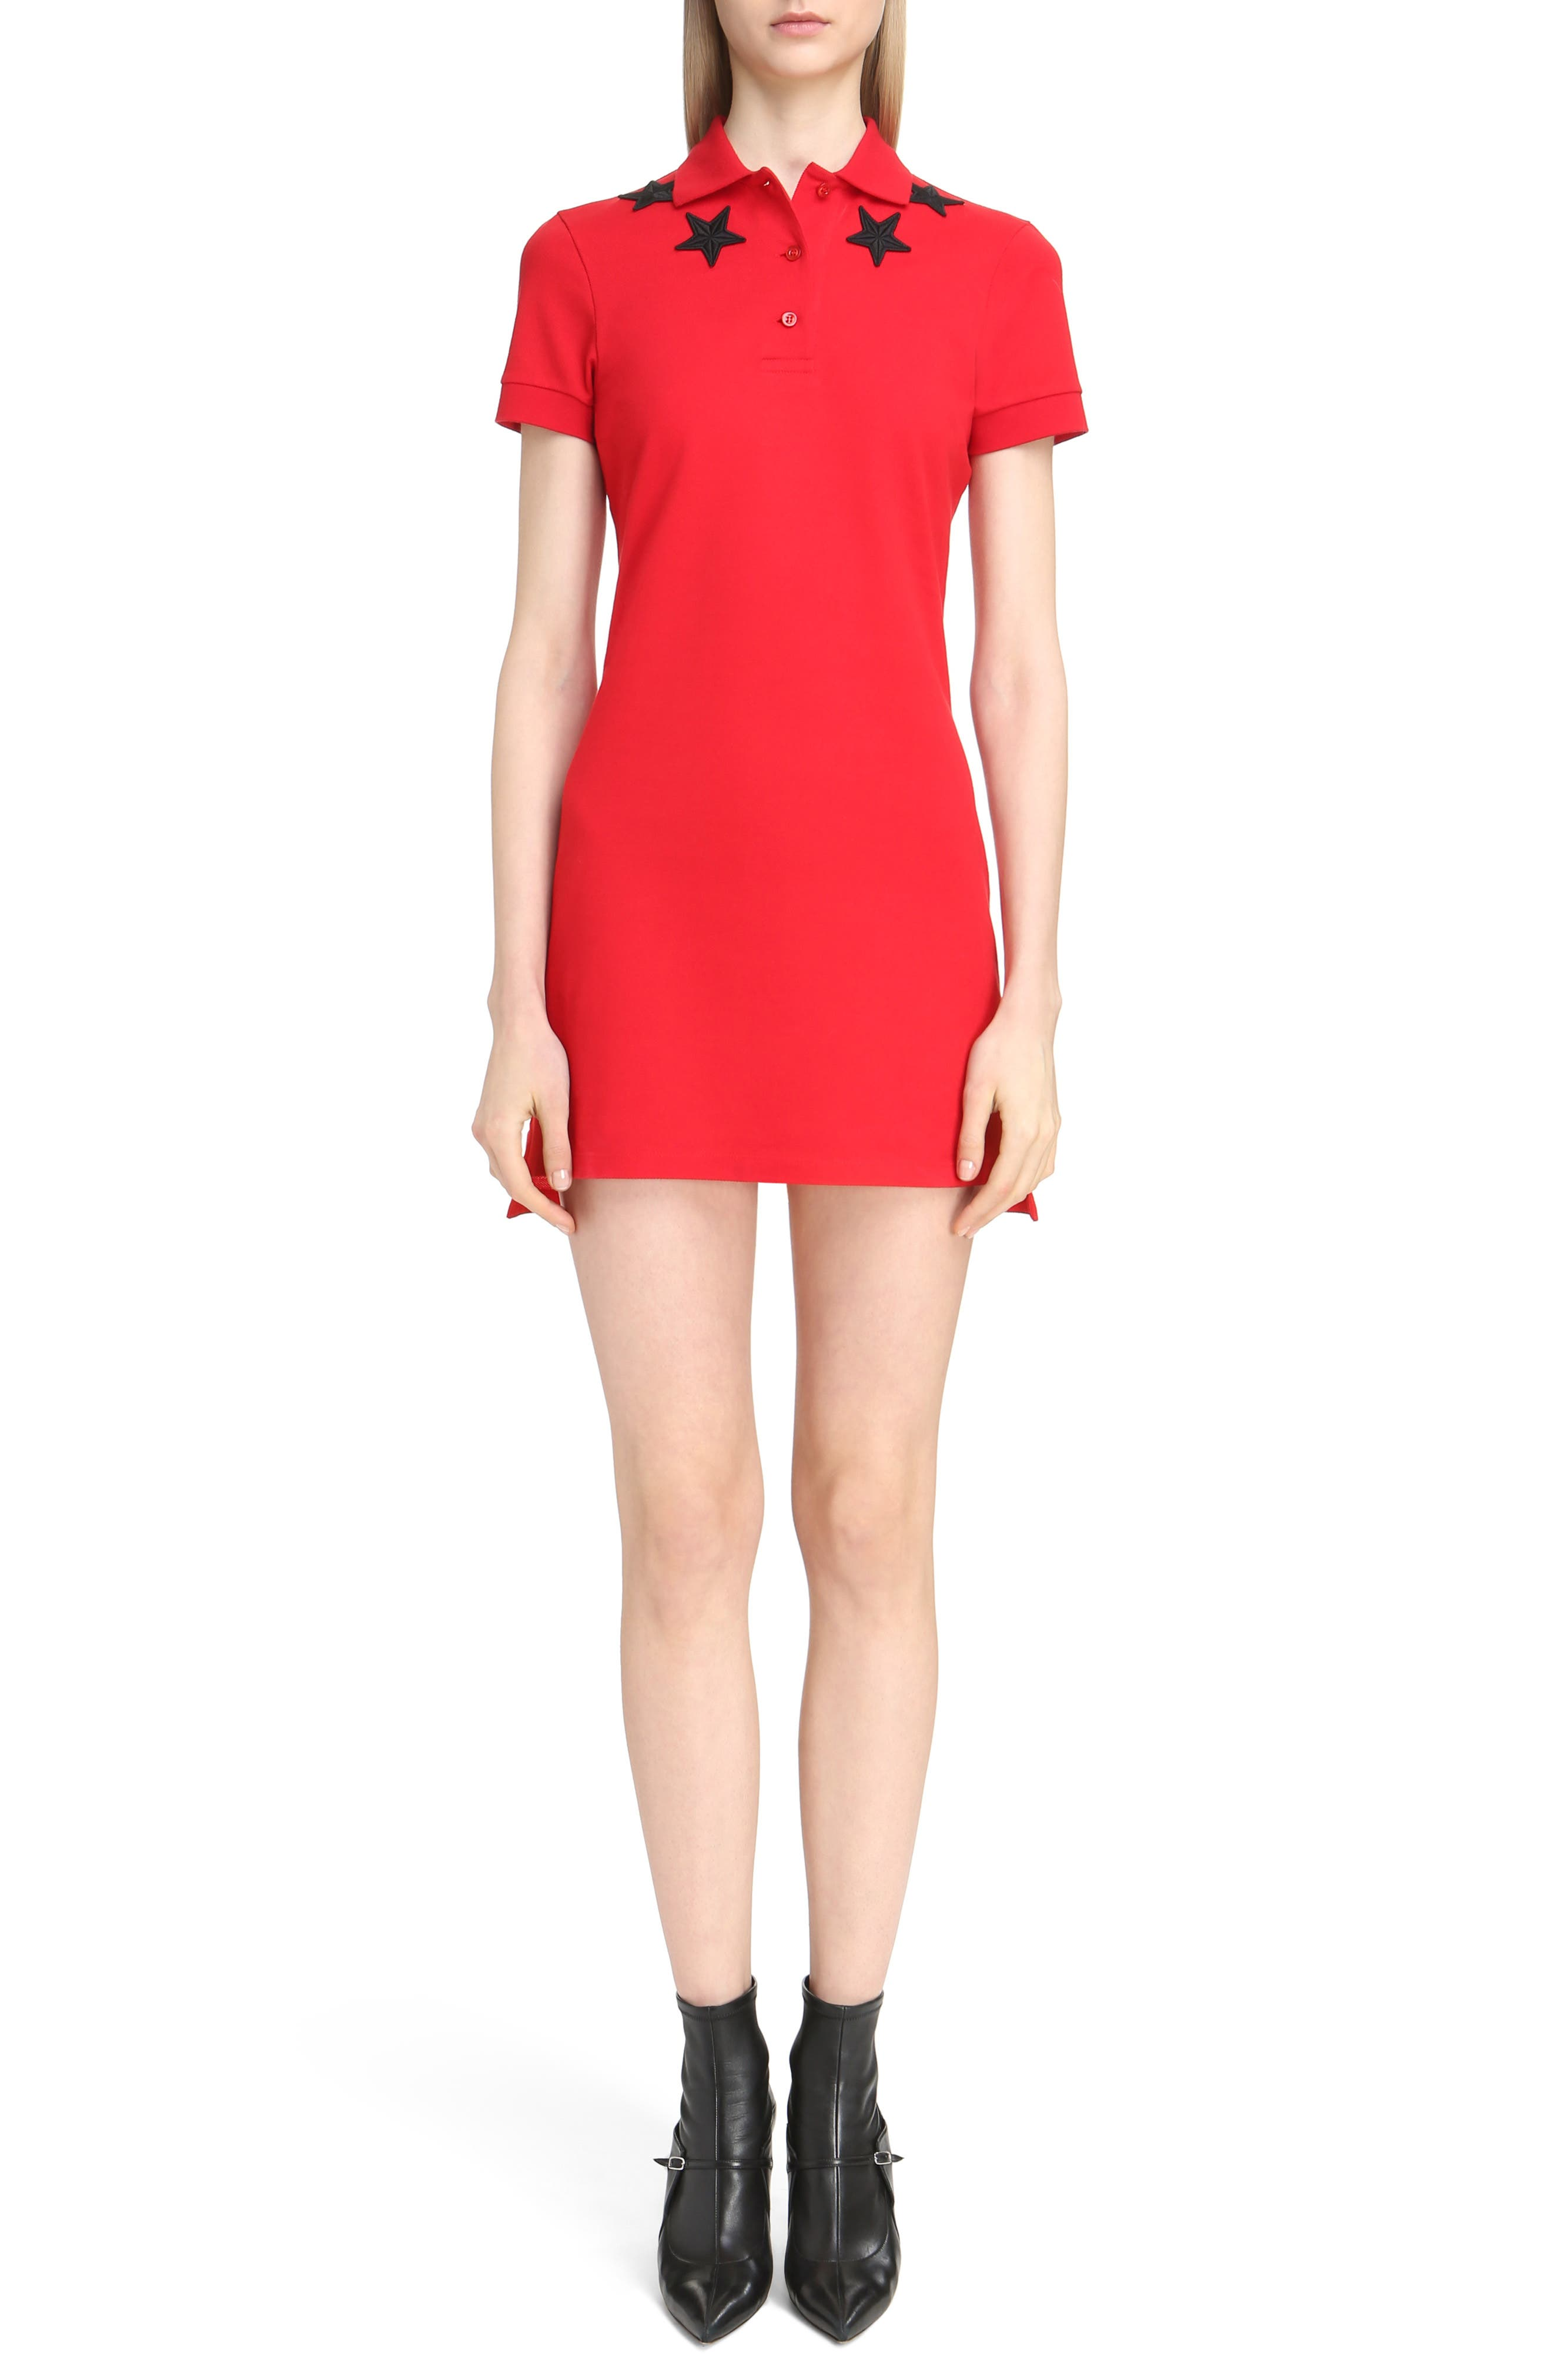 Givenchy Star Embellished Polo Dress